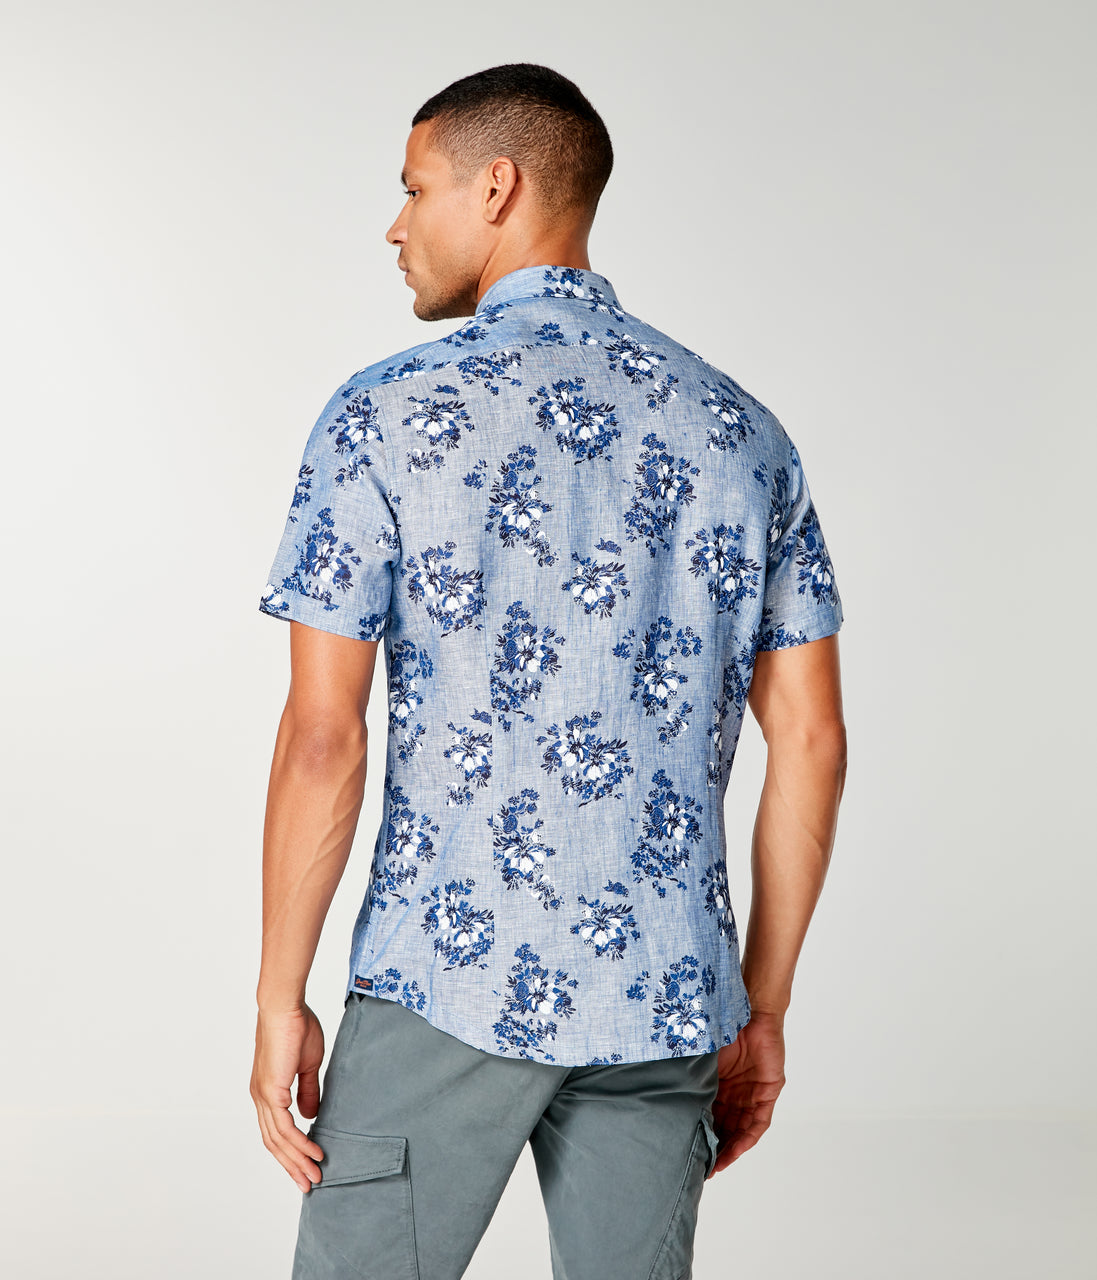 Linen On-Point Shirt - Indigo Tulum Floral - Good Man Brand - Linen On-Point Shirt - Indigo Tulum Floral